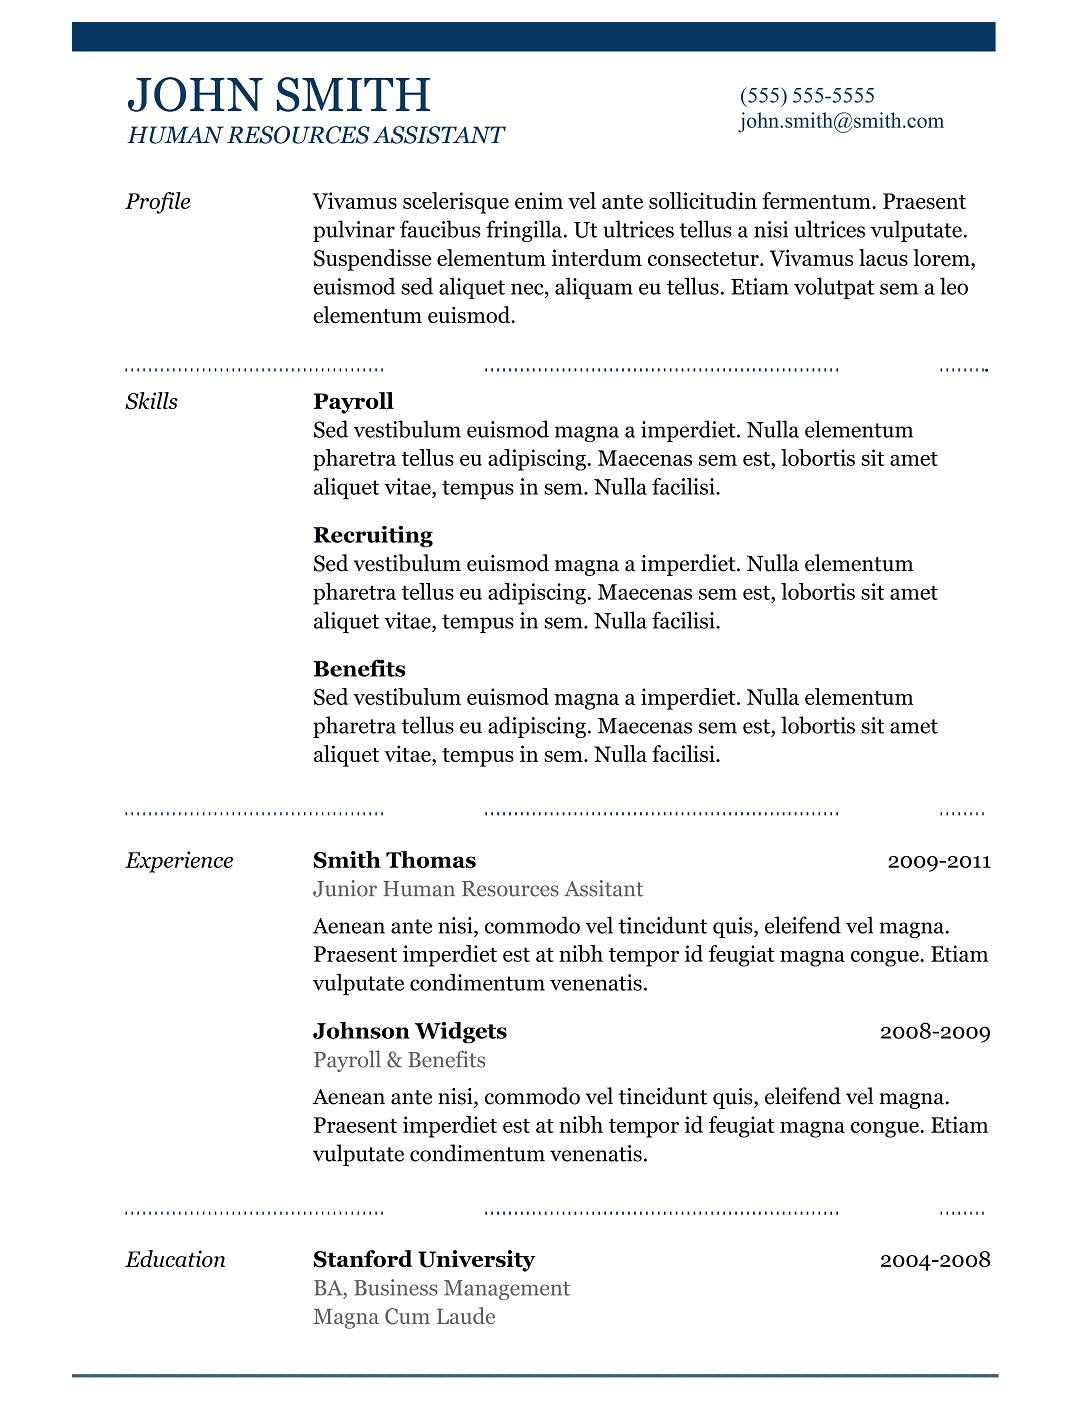 download template 2doc - Best Free Resume Templates